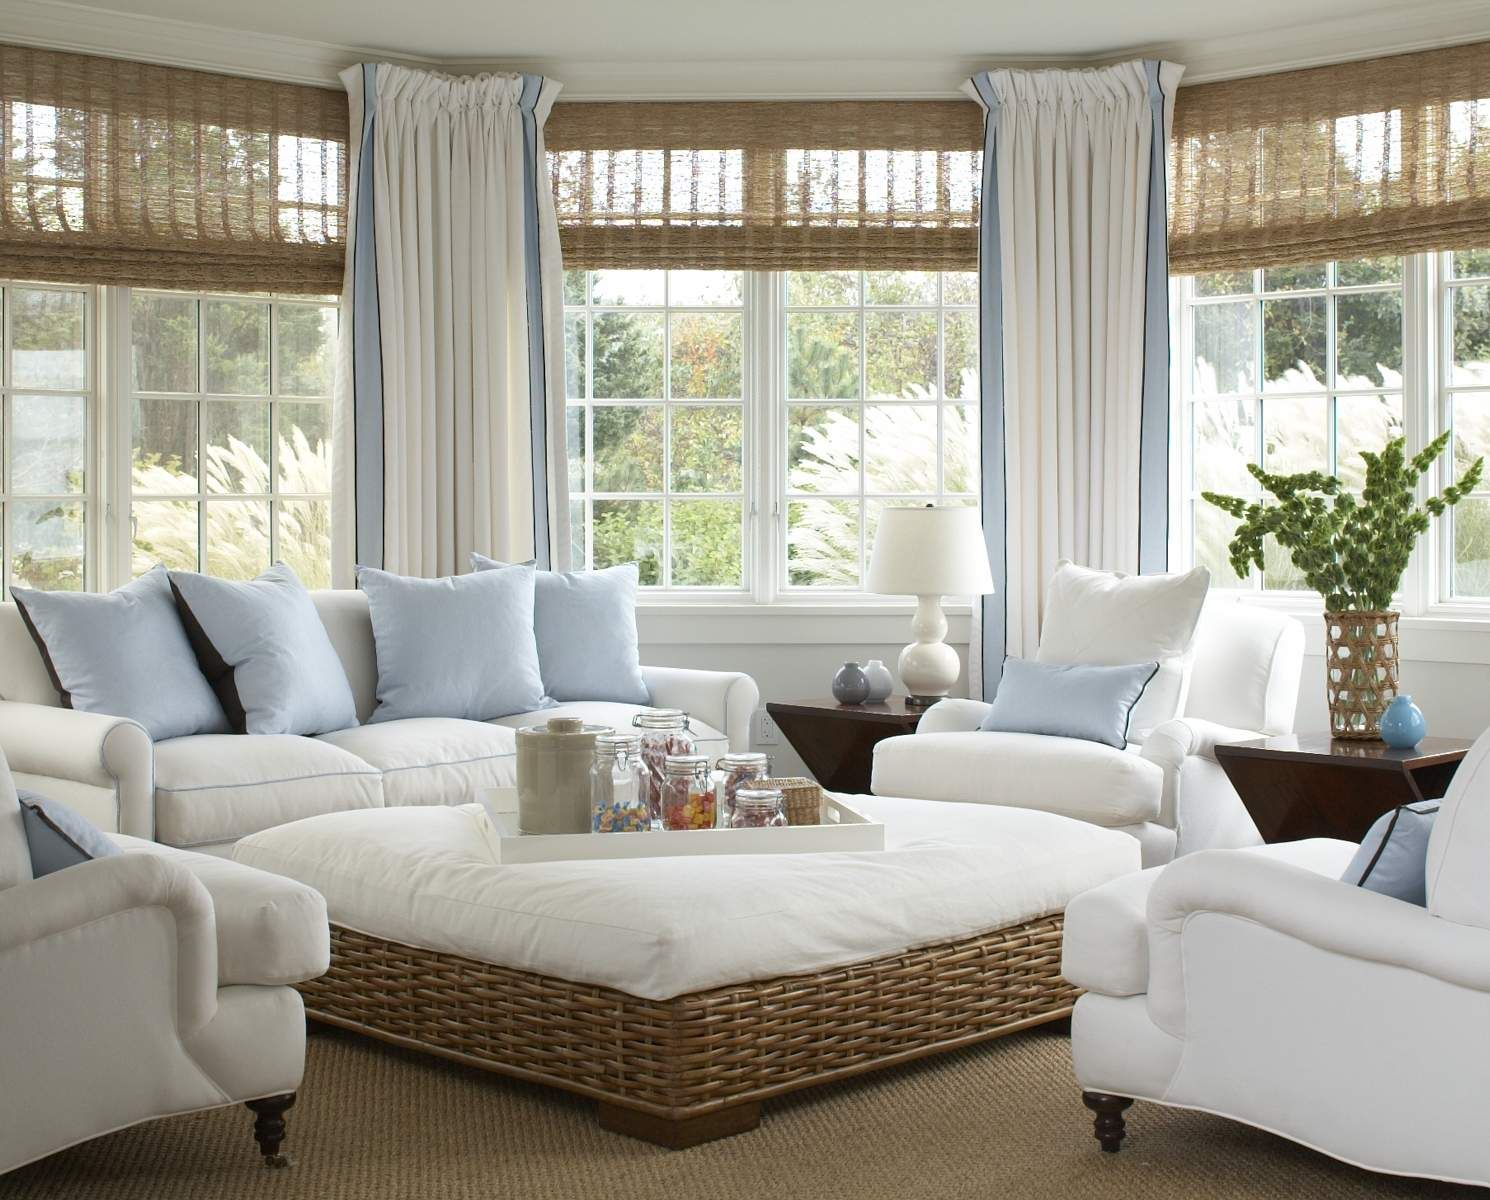 Style Archive Awash in White  Sunroom IdeasSunroom DecoratingDecorating  Style Archive Awash in White   Sunroom  Sunroom decorating and  . Sunroom Decor Ideas. Home Design Ideas